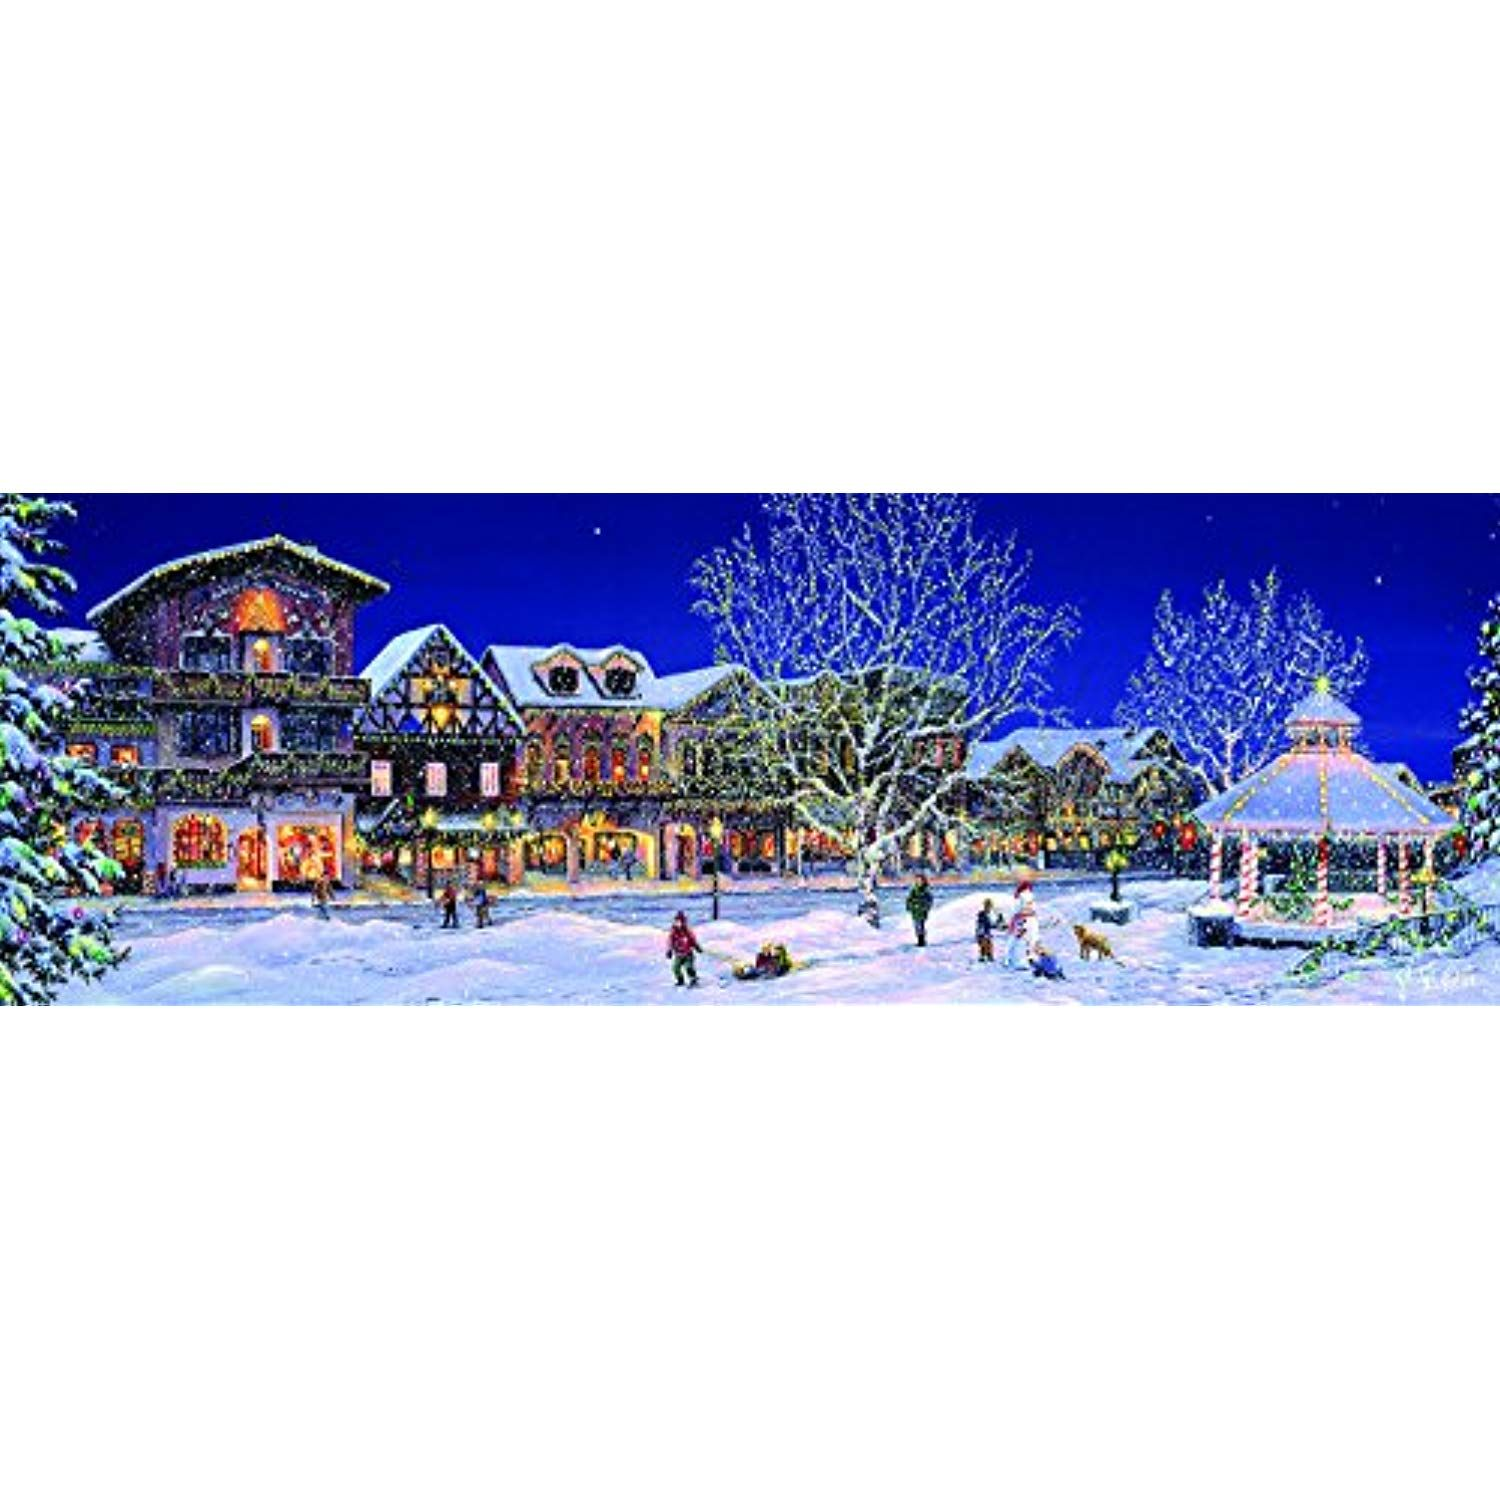 Holiday Lights 500 pc Jigsaw Puzzle by SunsOut